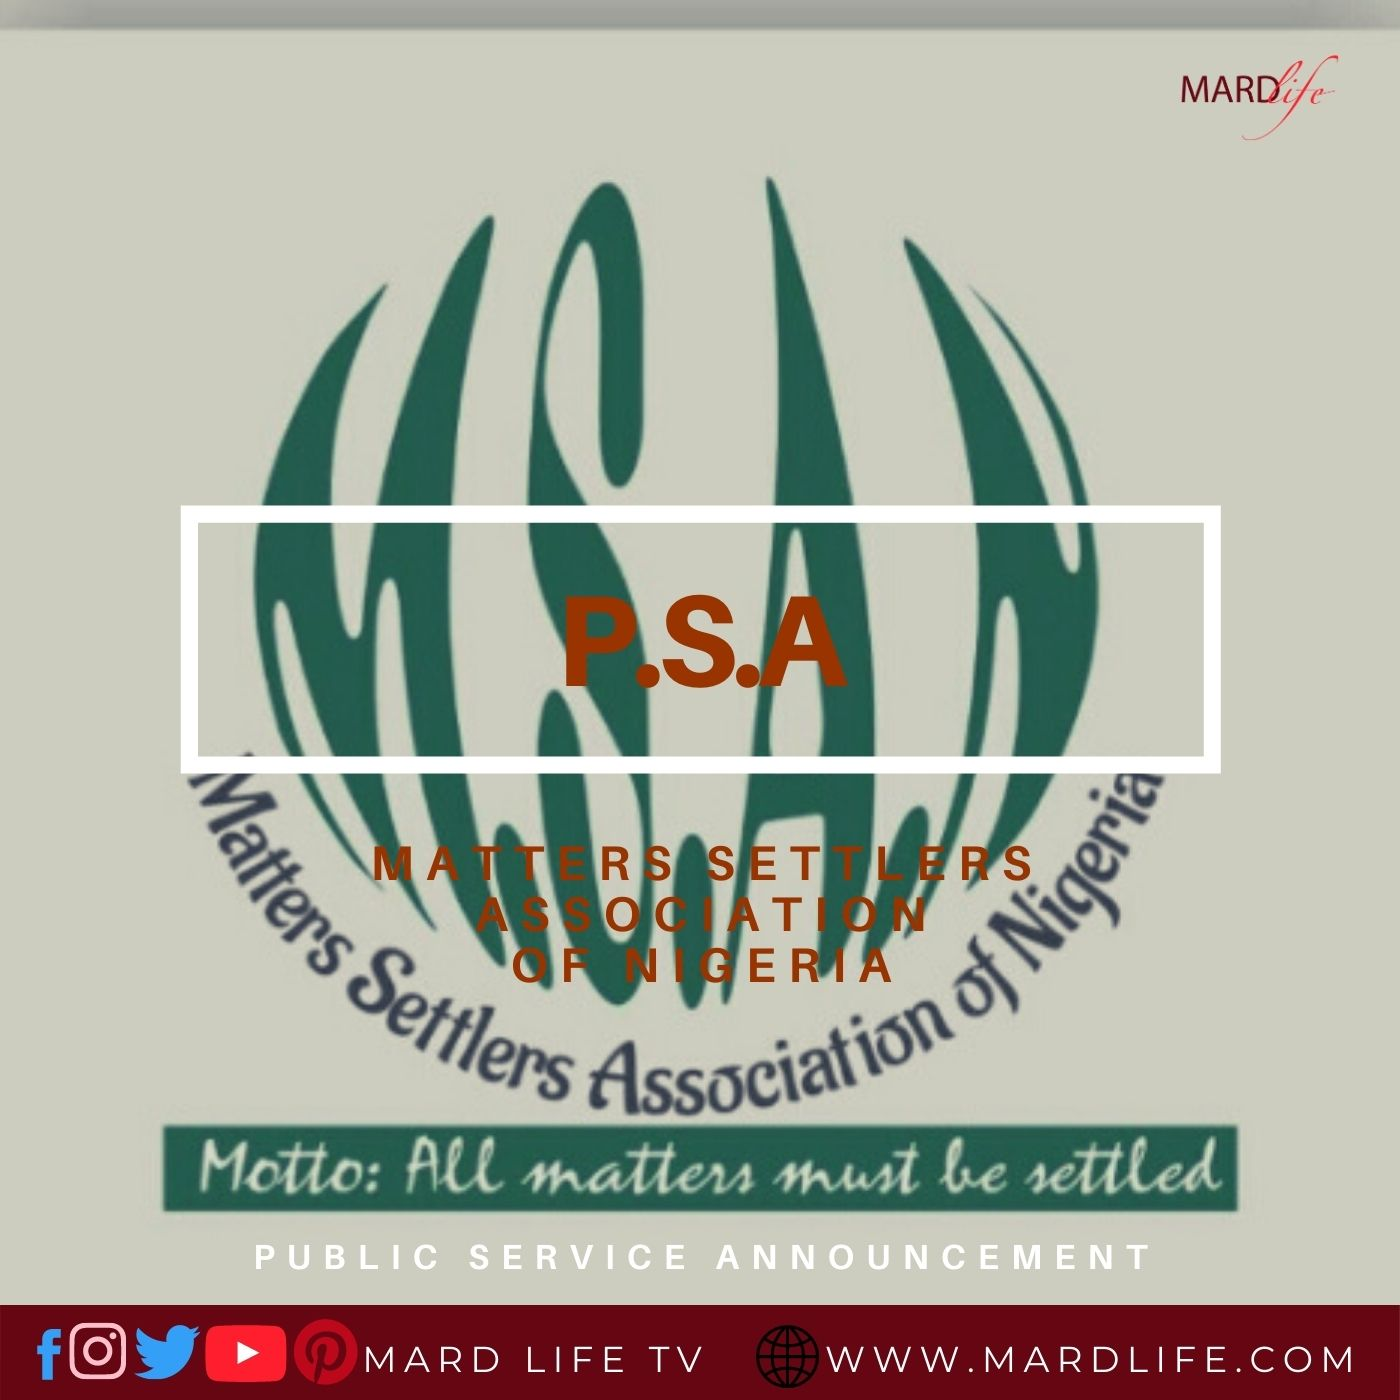 PSA: Matters Settlers Association Of Nigeria